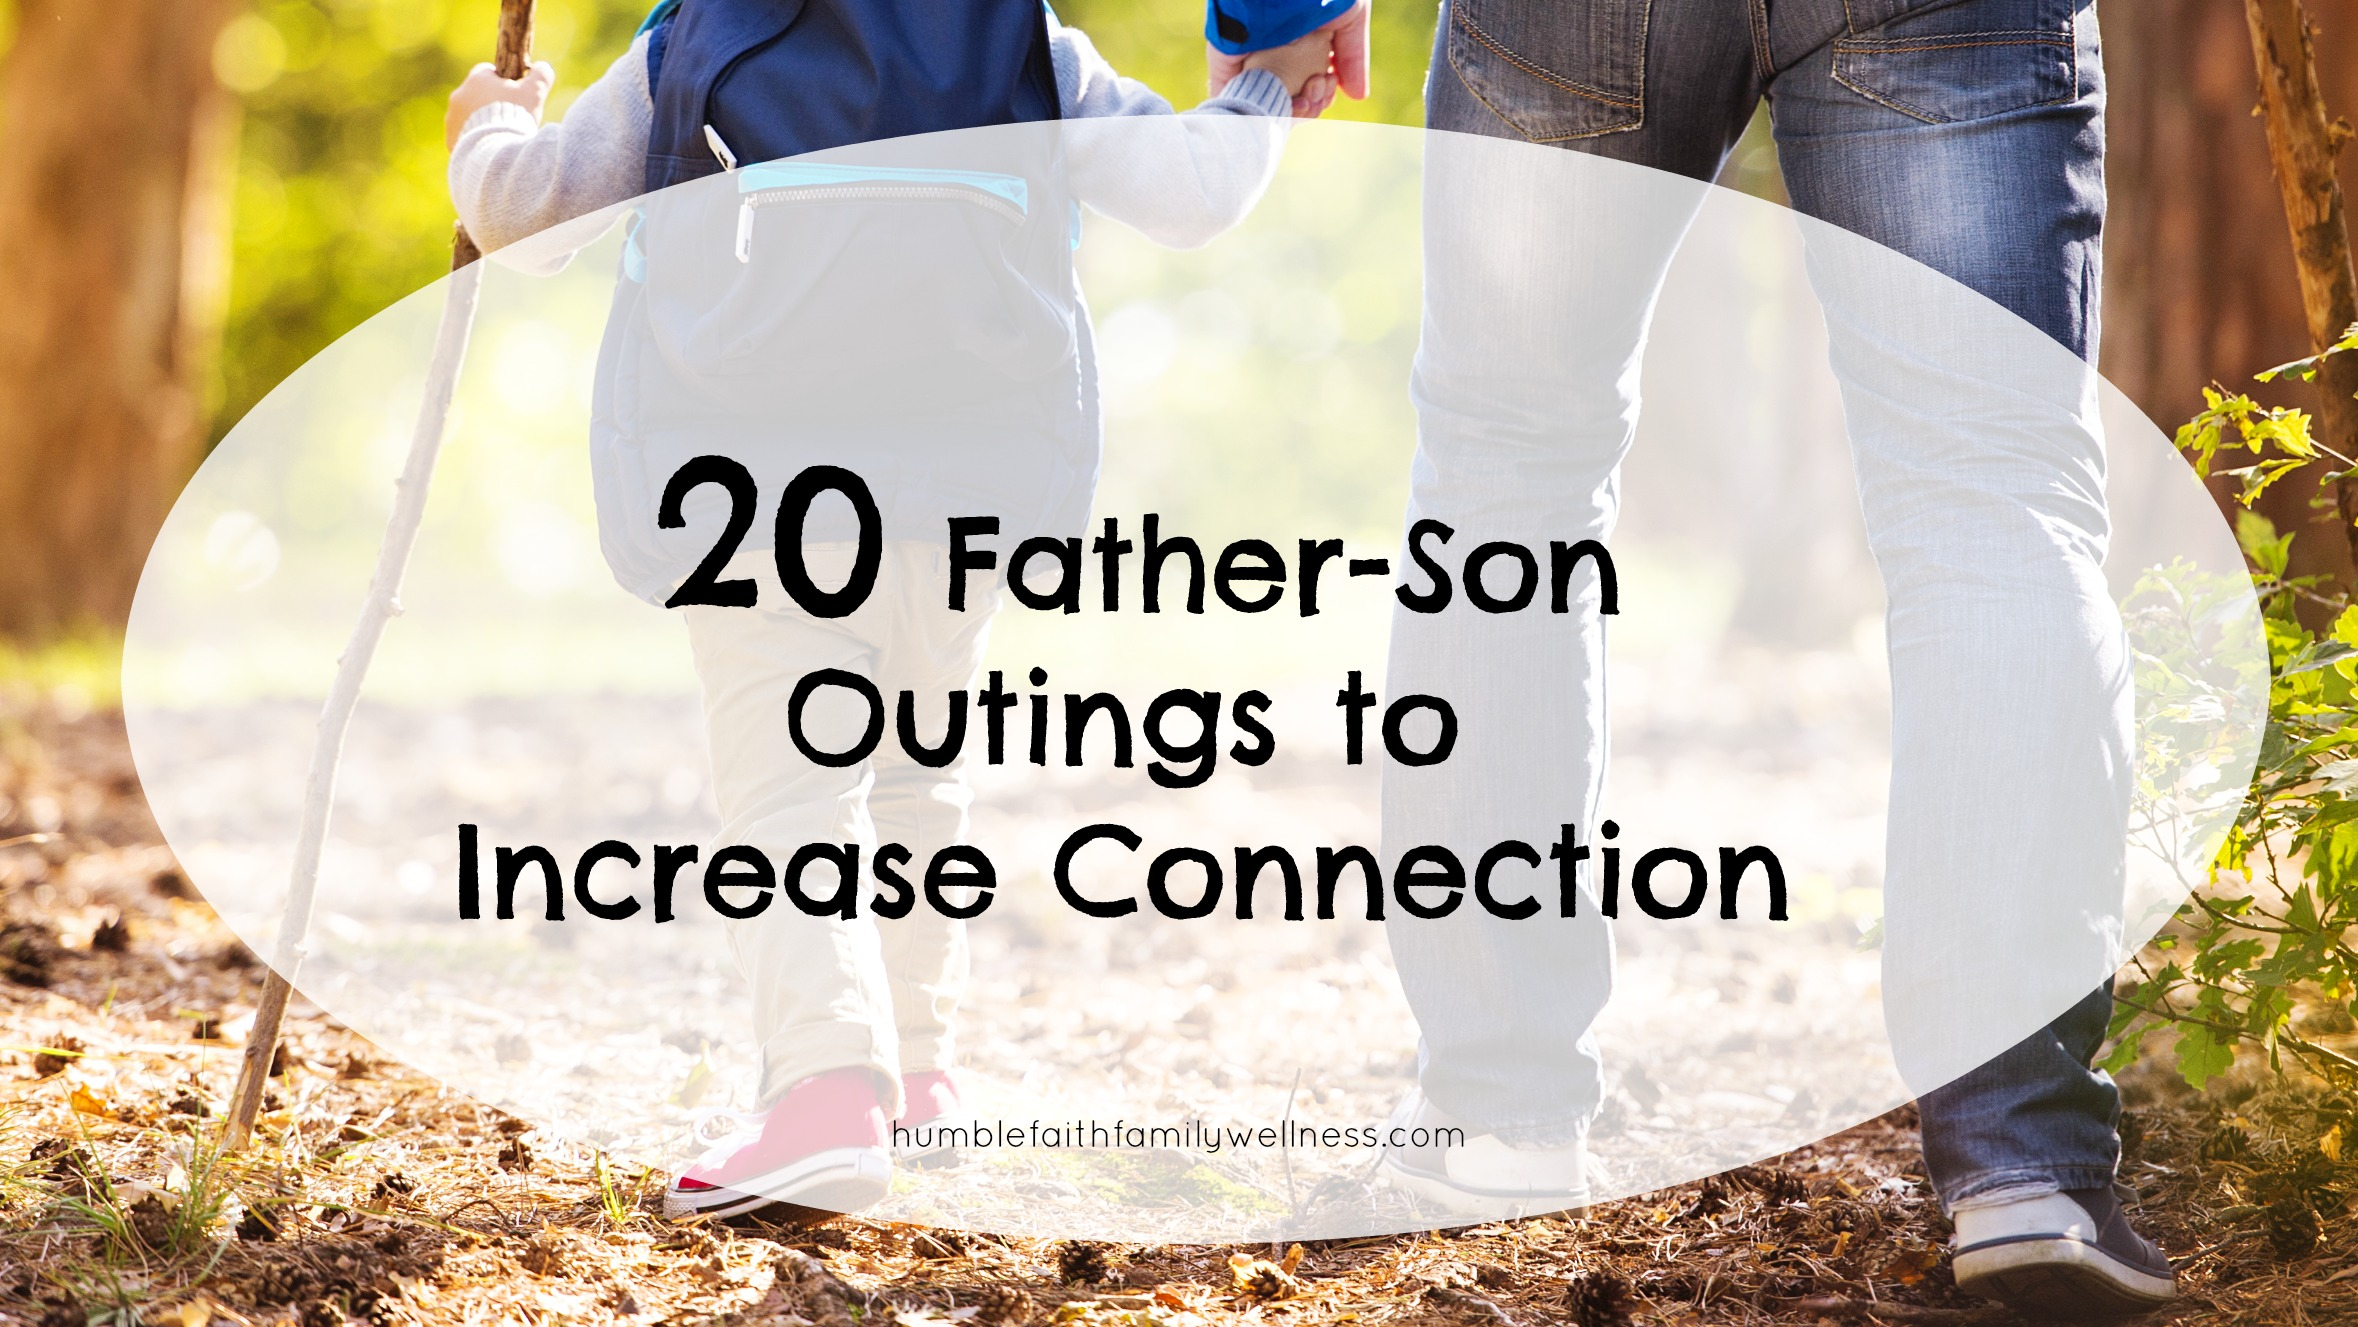 father-son connection, parenting